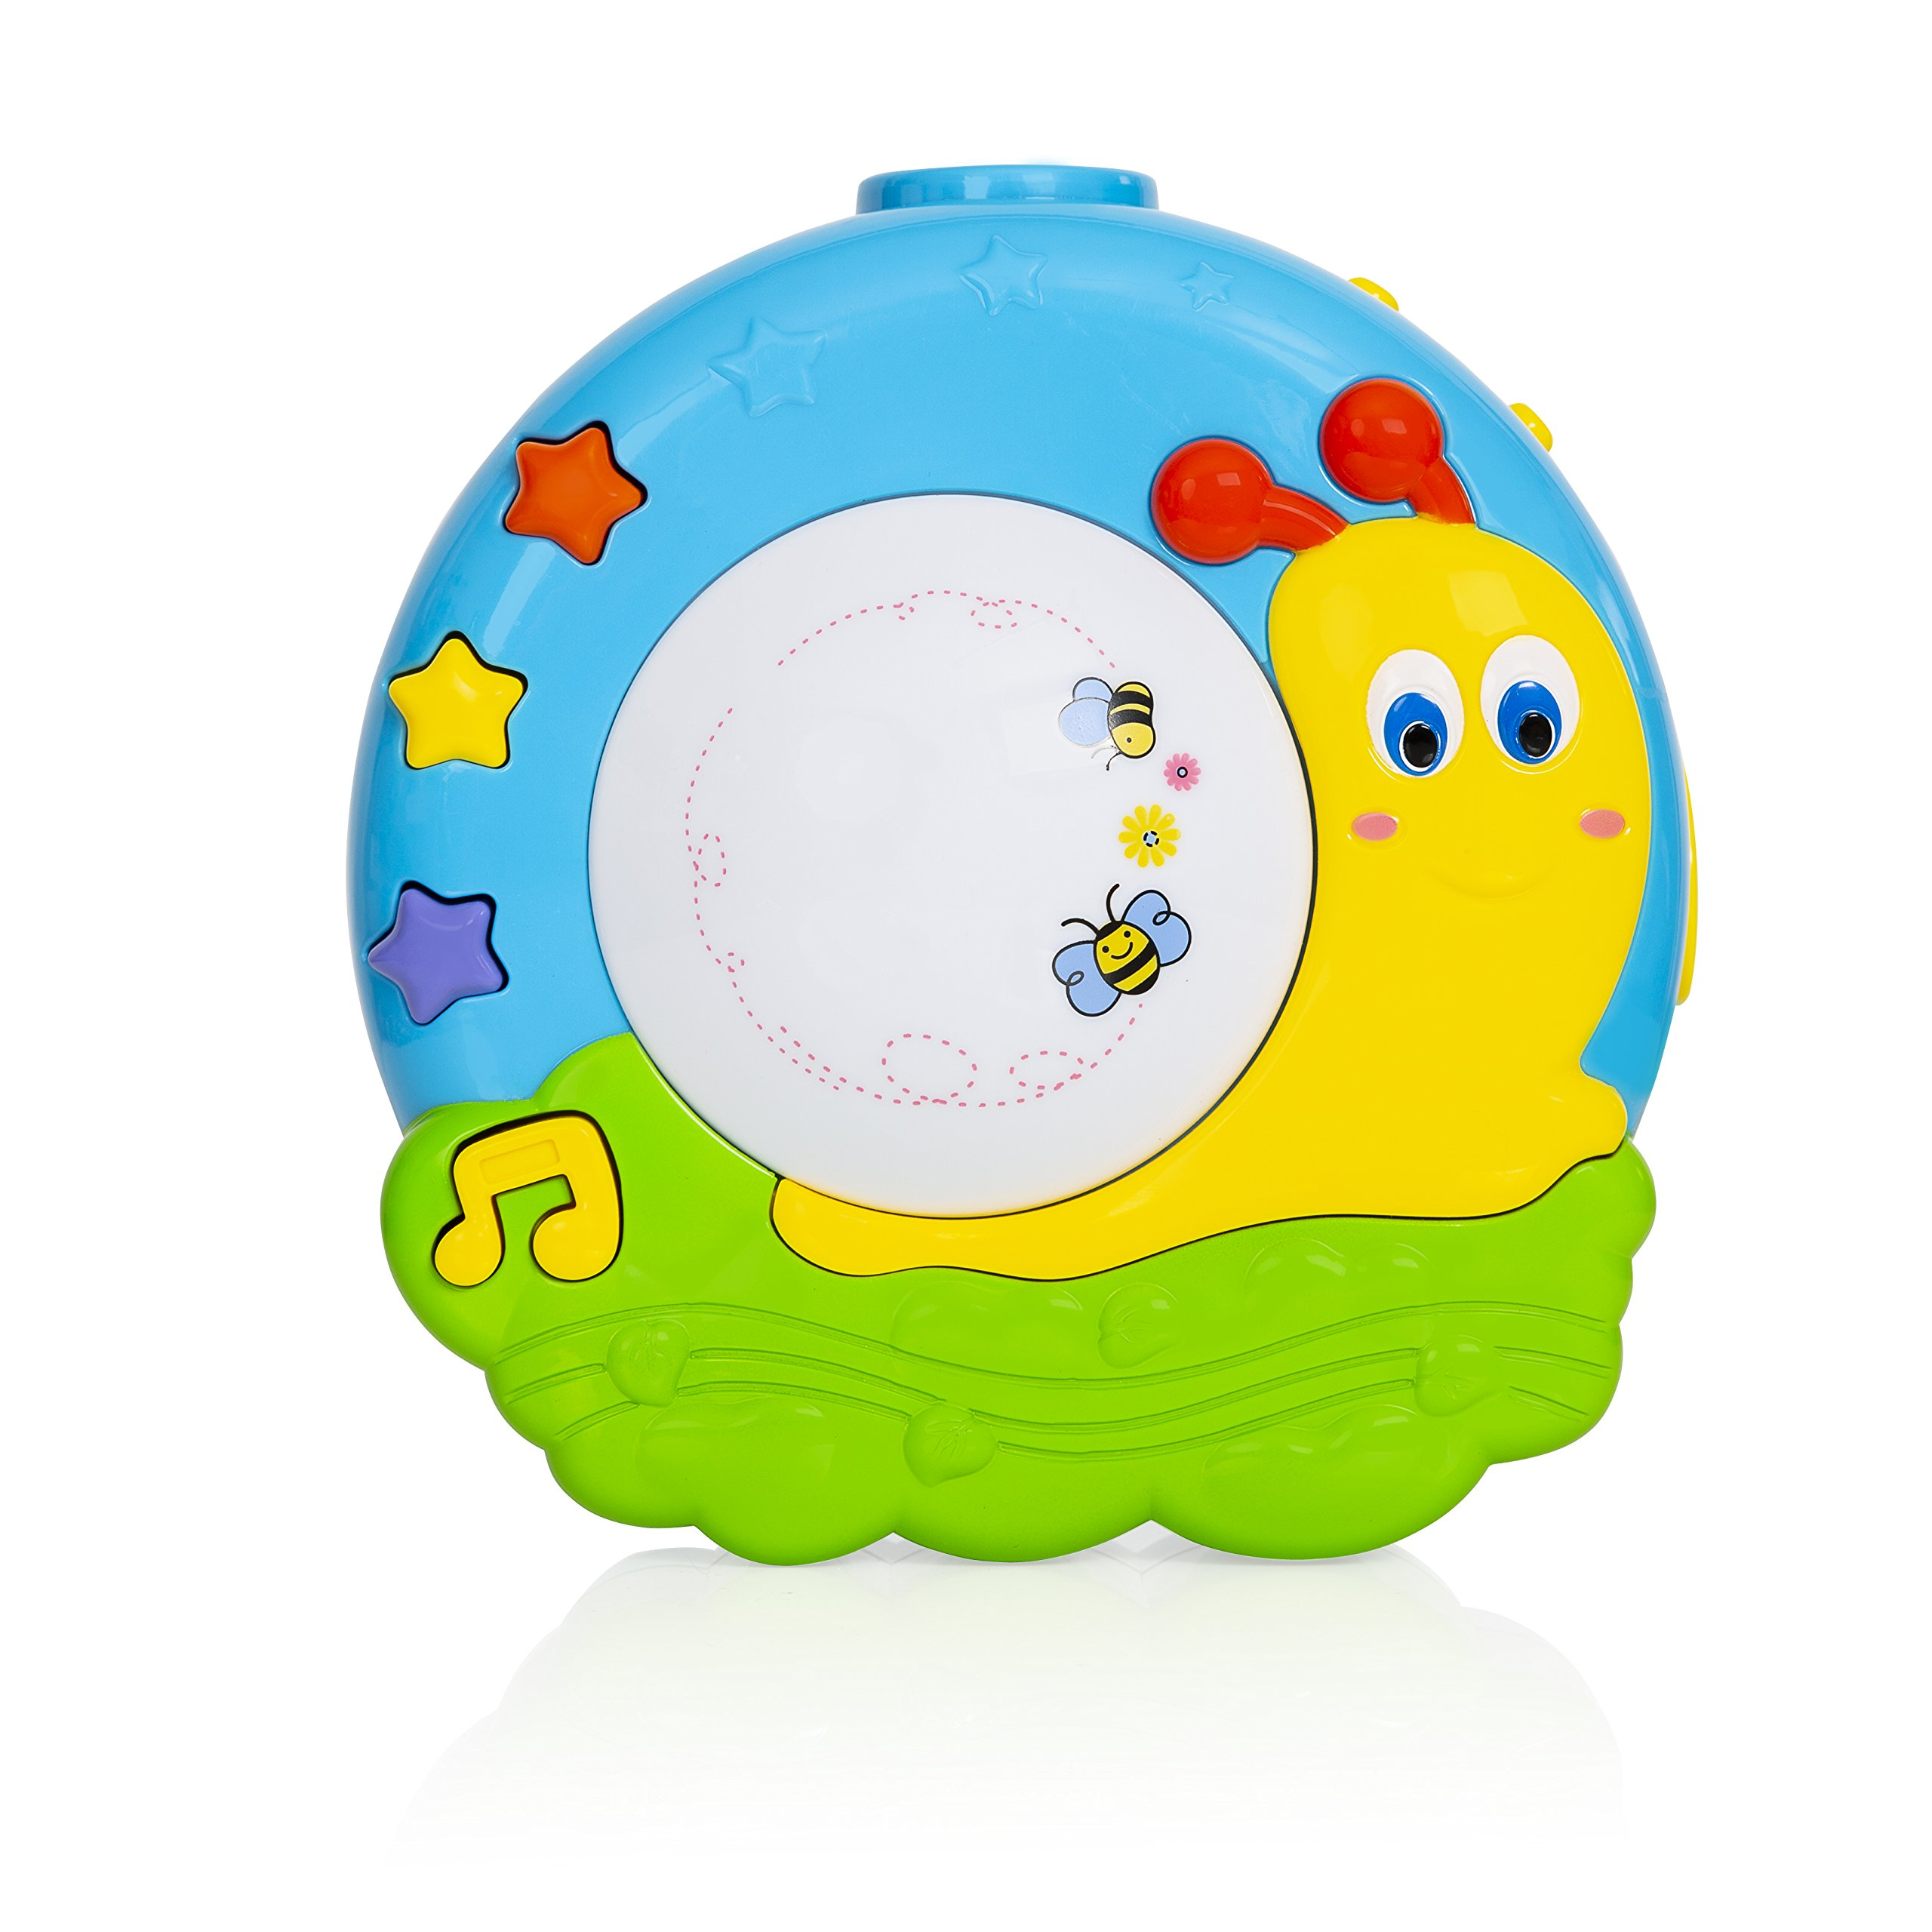 Baby Night Light Projector with Music, Nursery Lamp with 16 Relaxing Musical Sounds, Portable Sound Machine for Crib with Self Timer, Soothing Sleep Aid with Nature Sounds and Lullabies